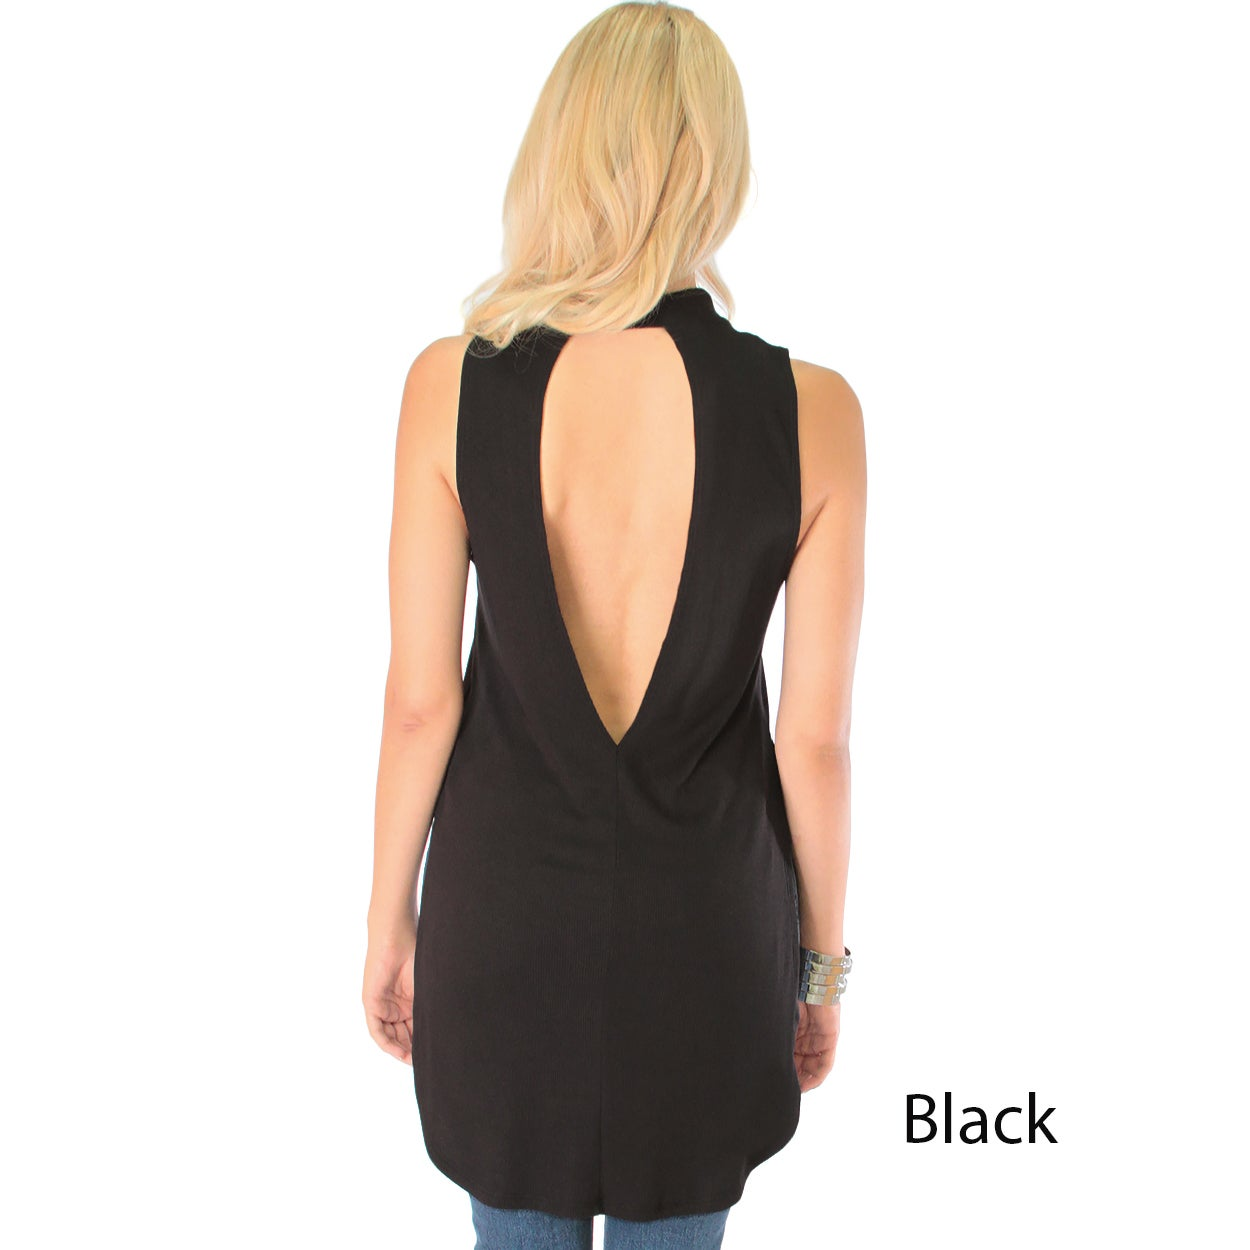 6a592ac997 Shop Flirting with Danger Women s Ribbed Cutout Top - Free Shipping On  Orders Over  45 - Overstock.com - 12872977